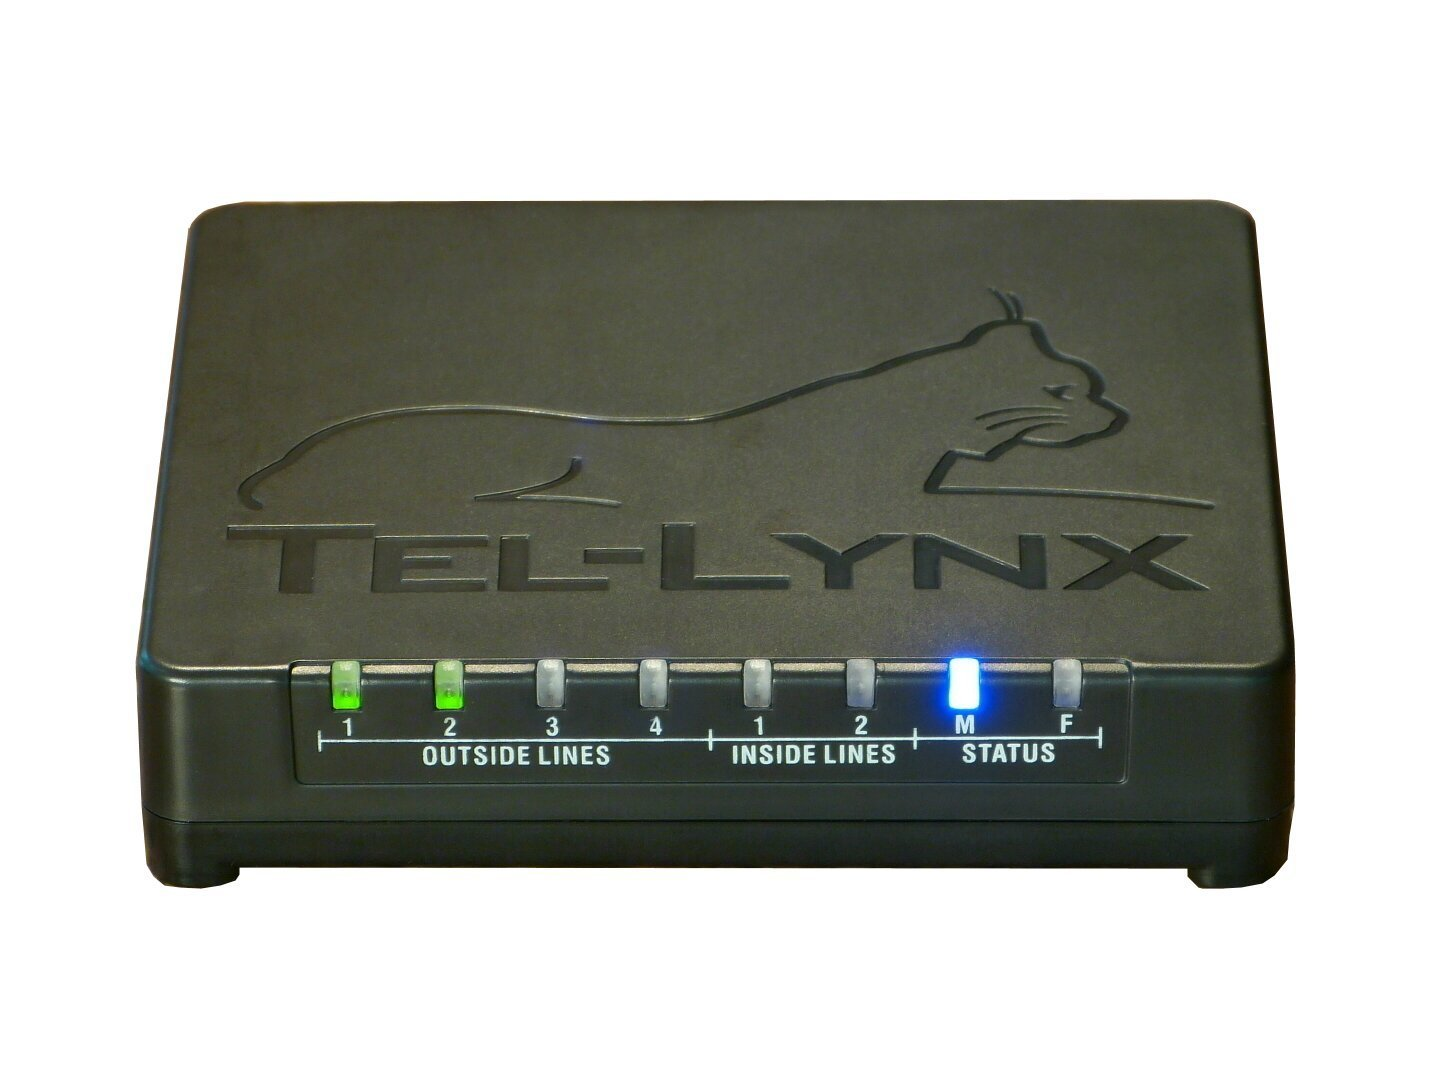 Tel-Lynx Guardian Personal Telephone Assistant